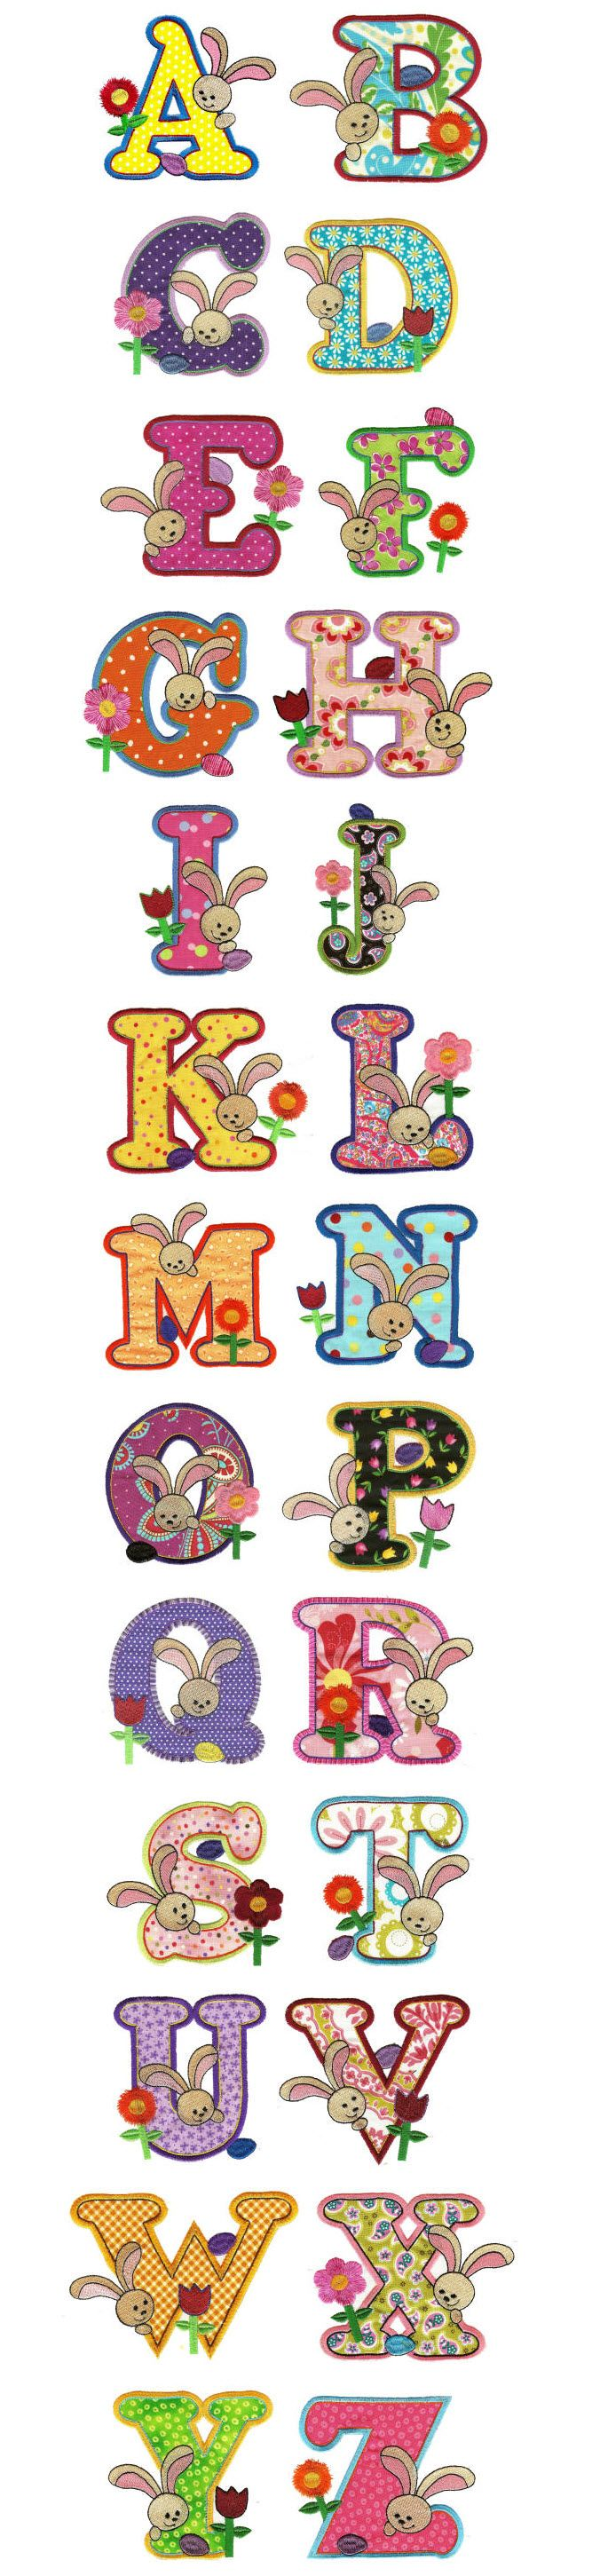 Easter Alphabet Applique